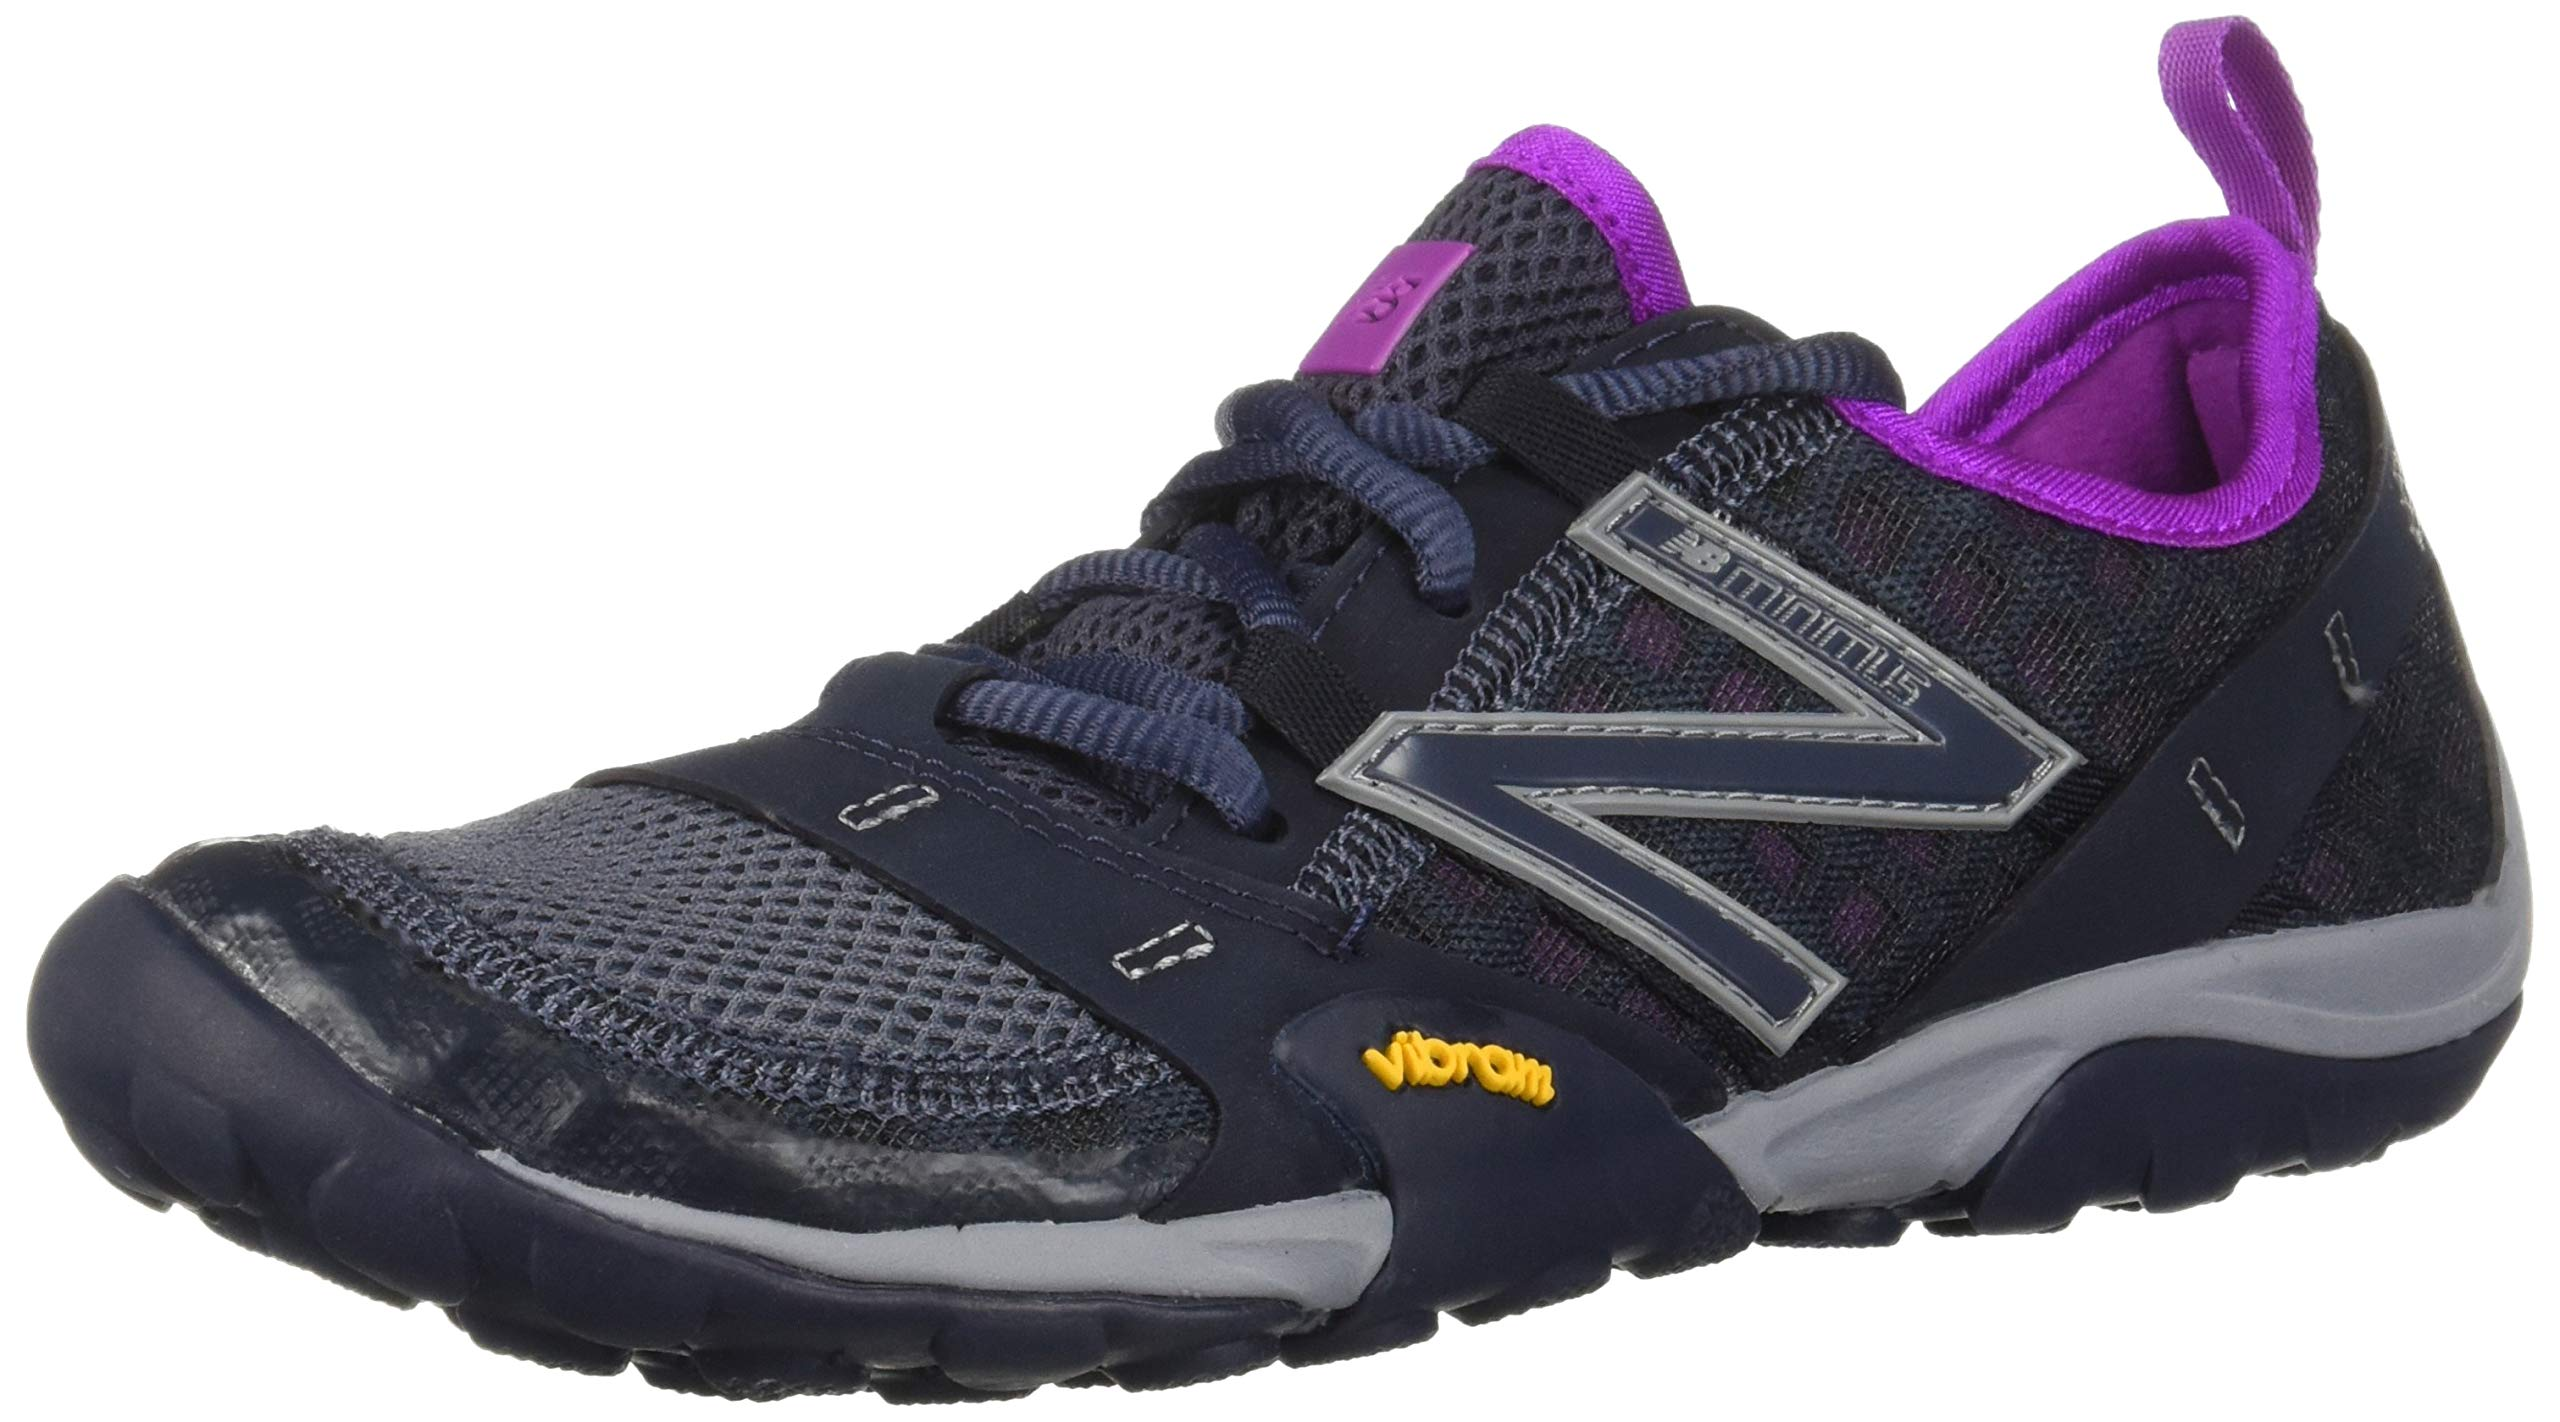 New Balance Women's 10v1 Minimus Trail Running Shoe, Outerspace/Voltage Violet, 7 D US by New Balance